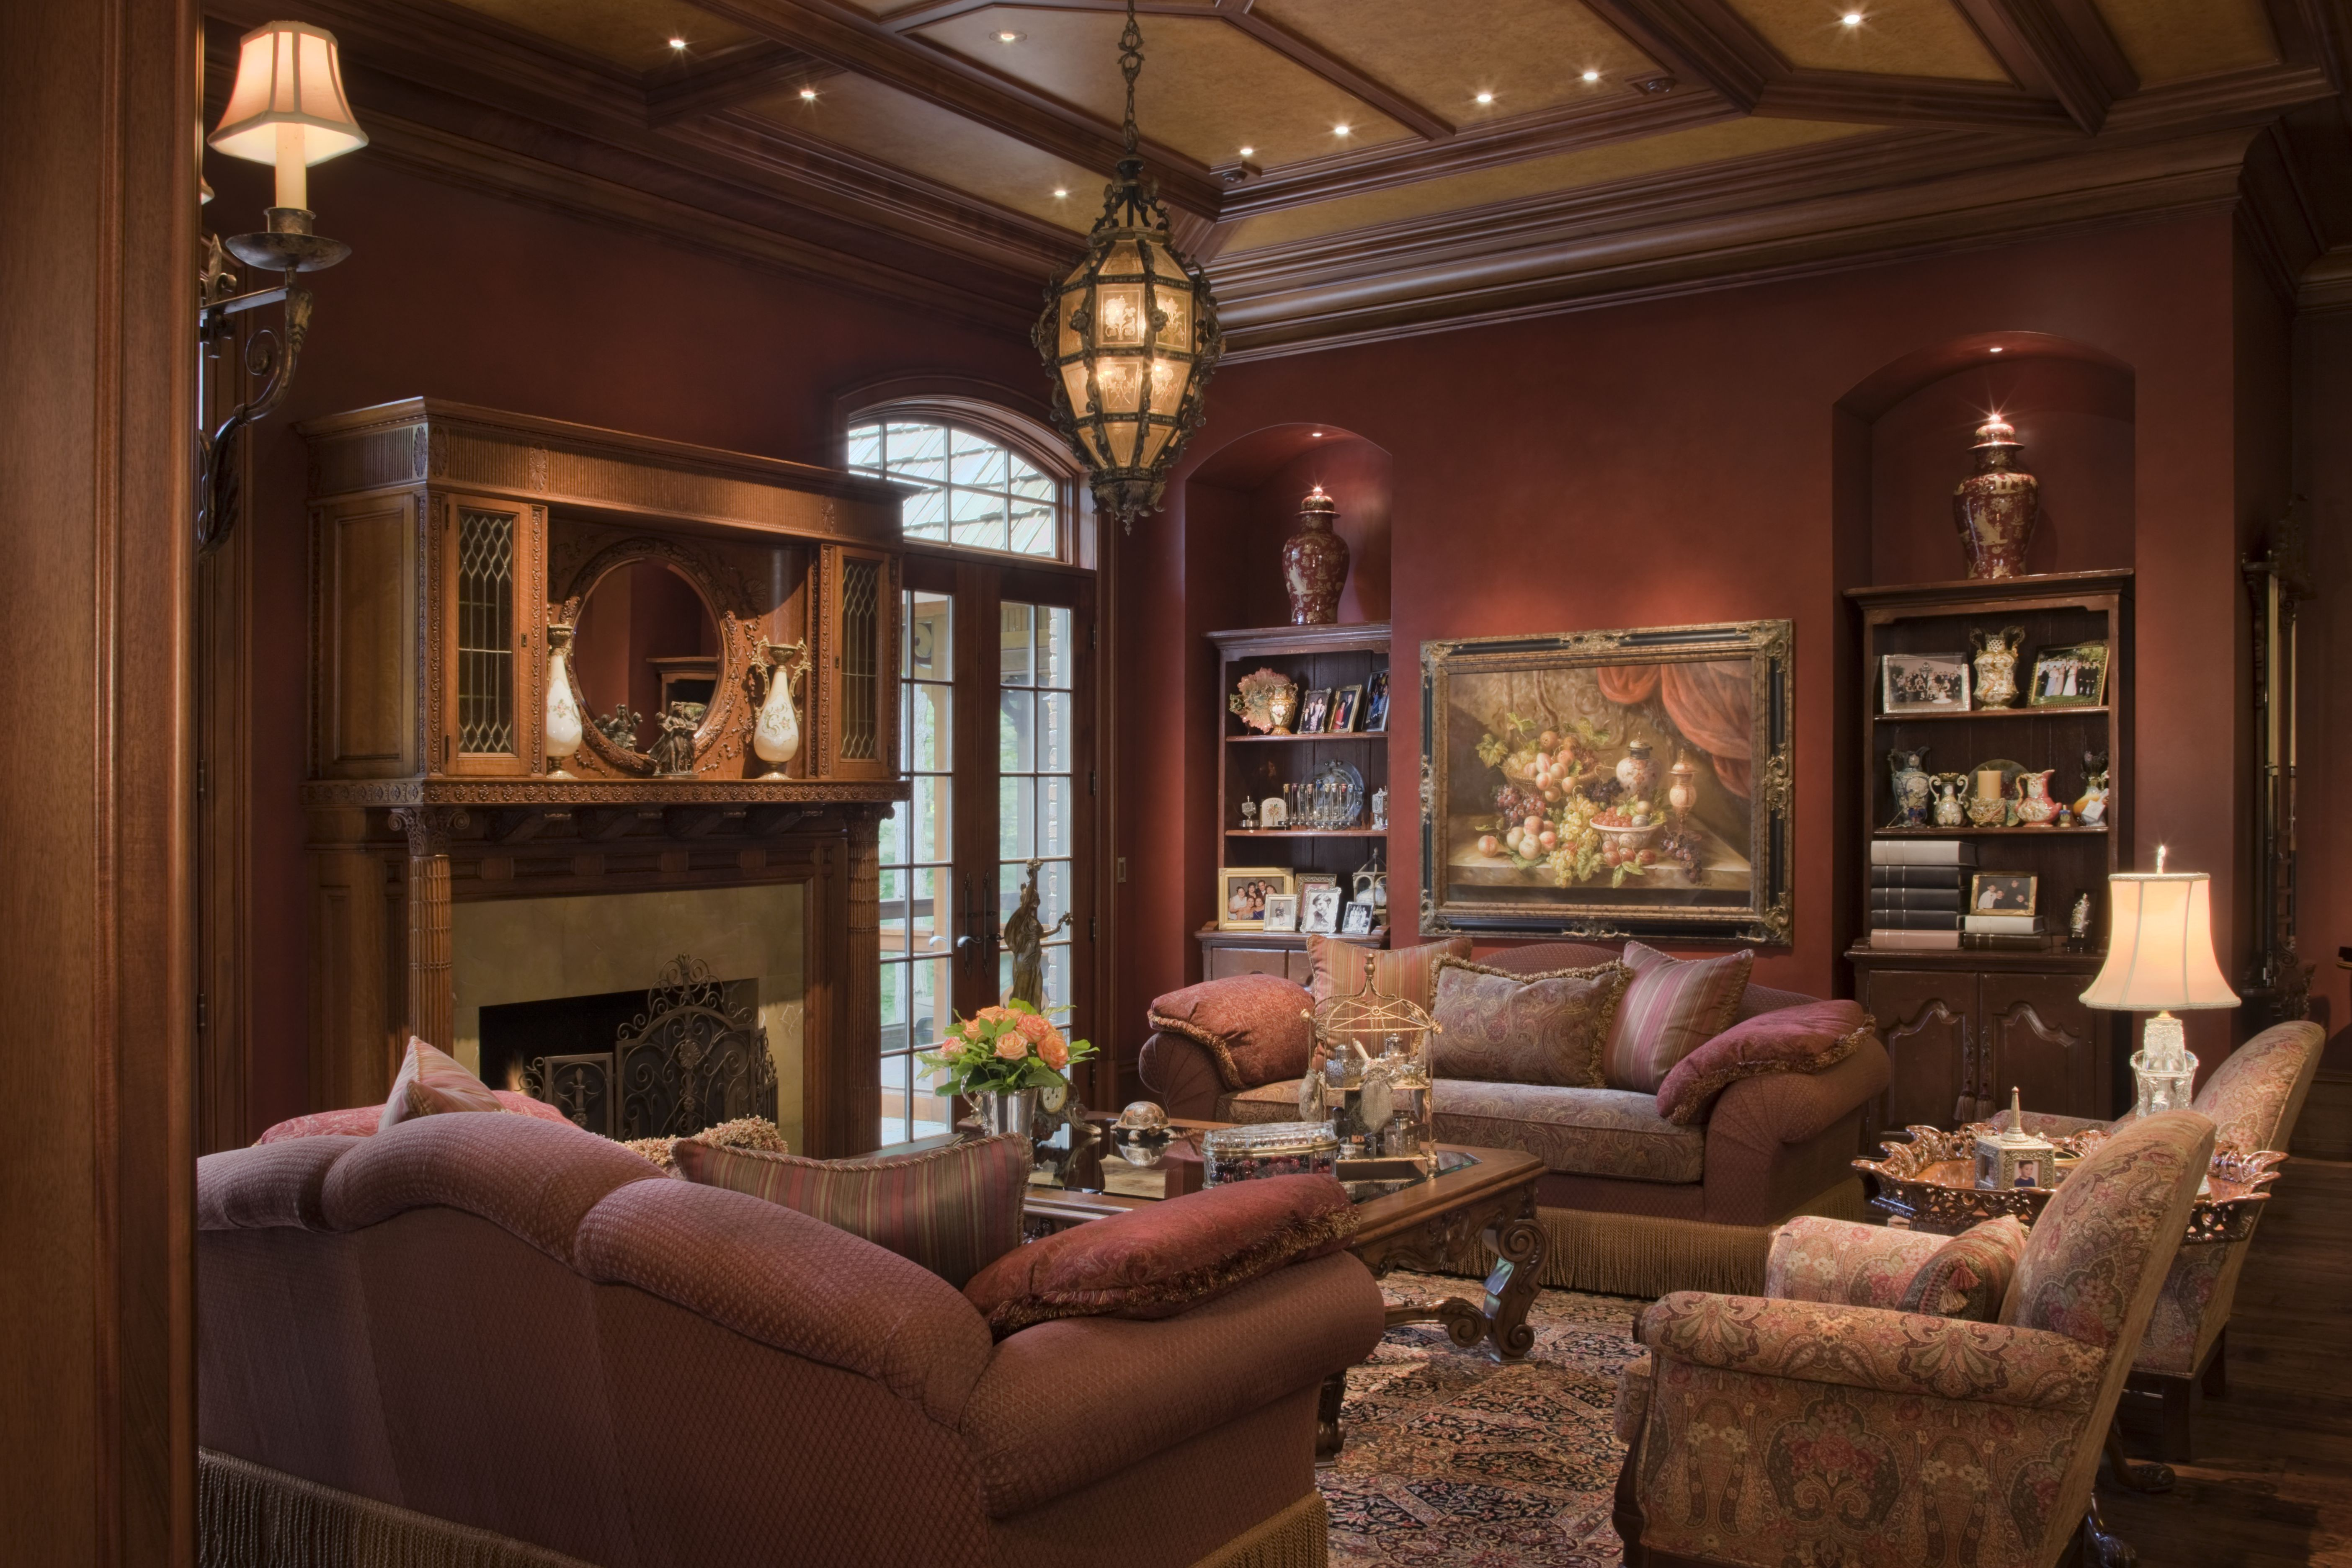 Great Traditional Living Room Interior Design Ideas 5616 x 3744 · 1825 kB · jpeg